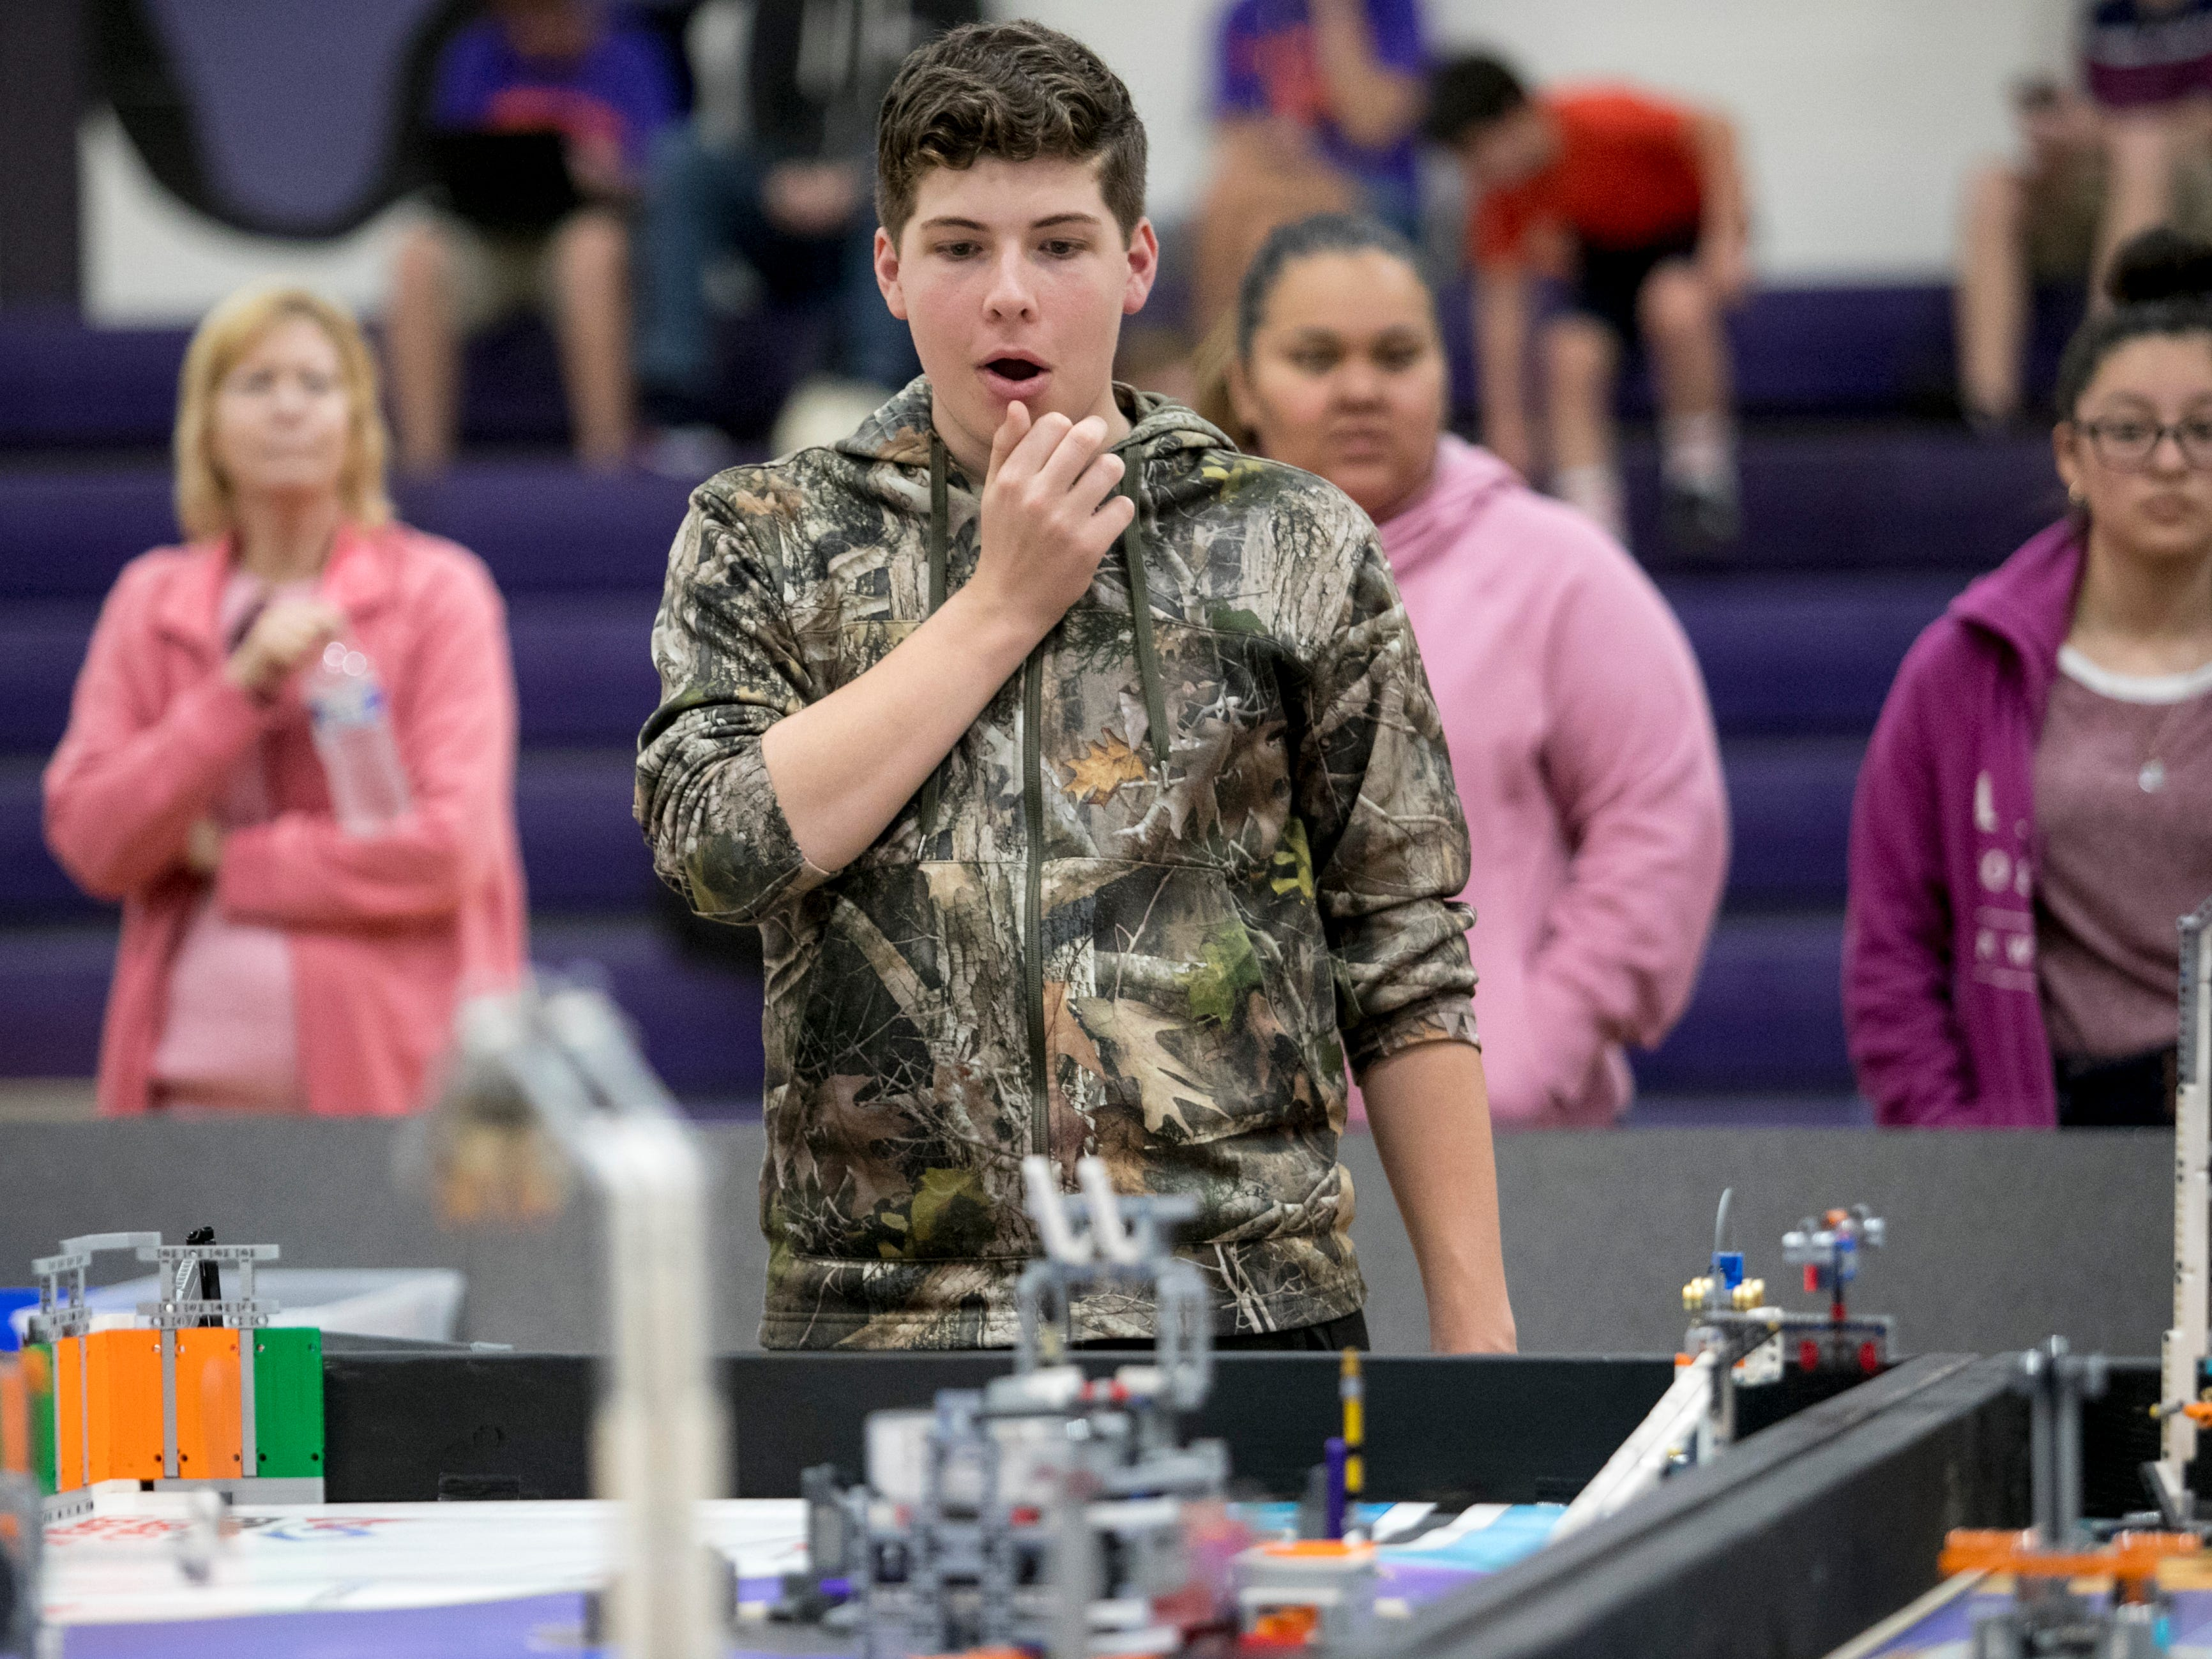 Justin Sherrod and the LaBelle Middle School Techno Waffles team reacts during the Cypress Lake First LEGO League Qualifying Tournament at Cypress Lake Middle School in Fort Myers on Saturday, January 12, 2019.